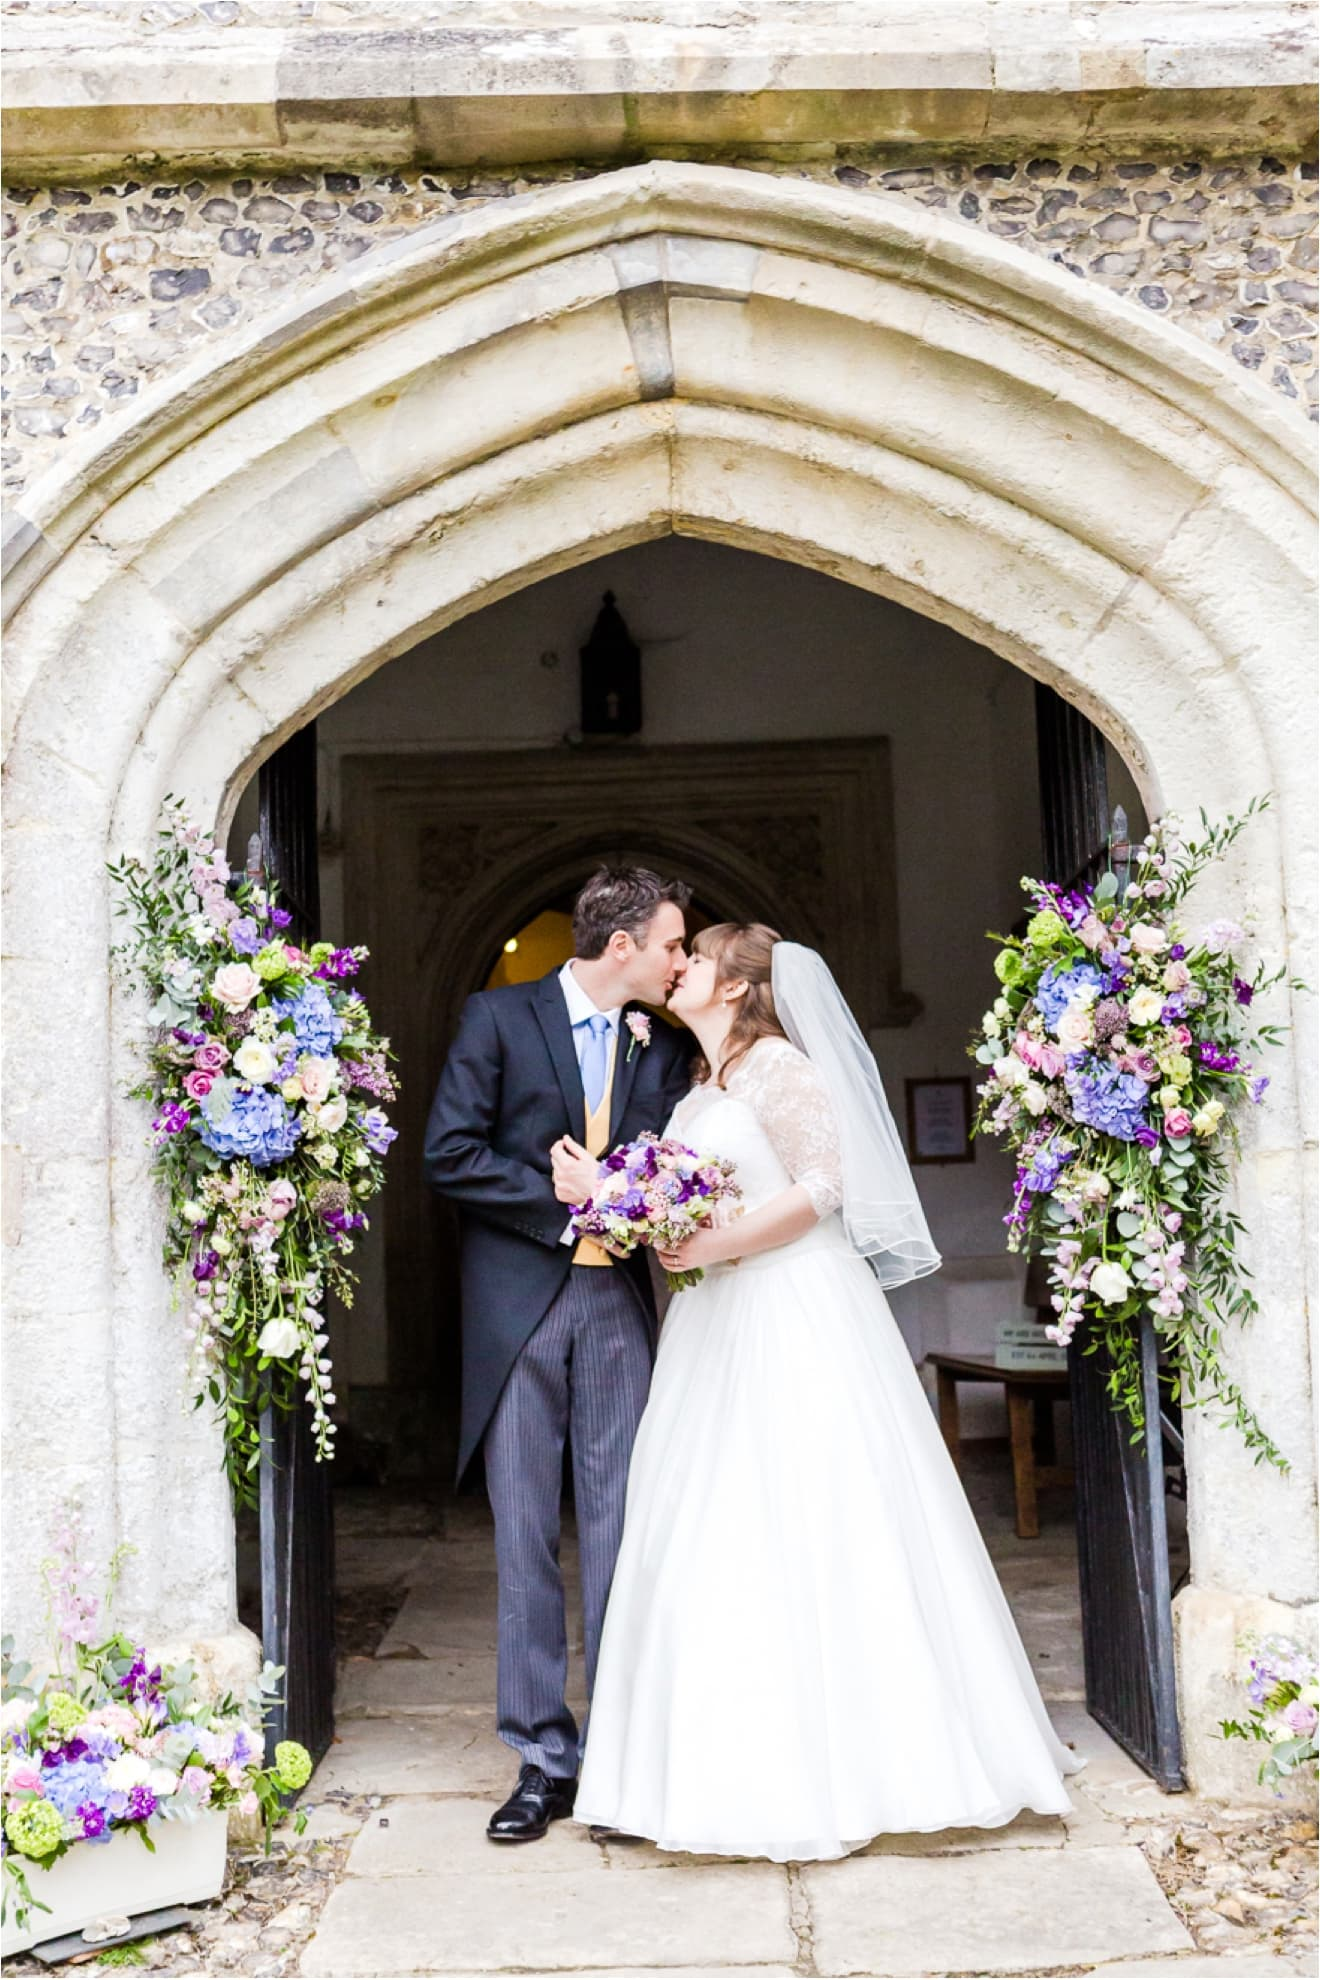 wedding-at-hambledon-vineyard-eddie-judd-photographer0056